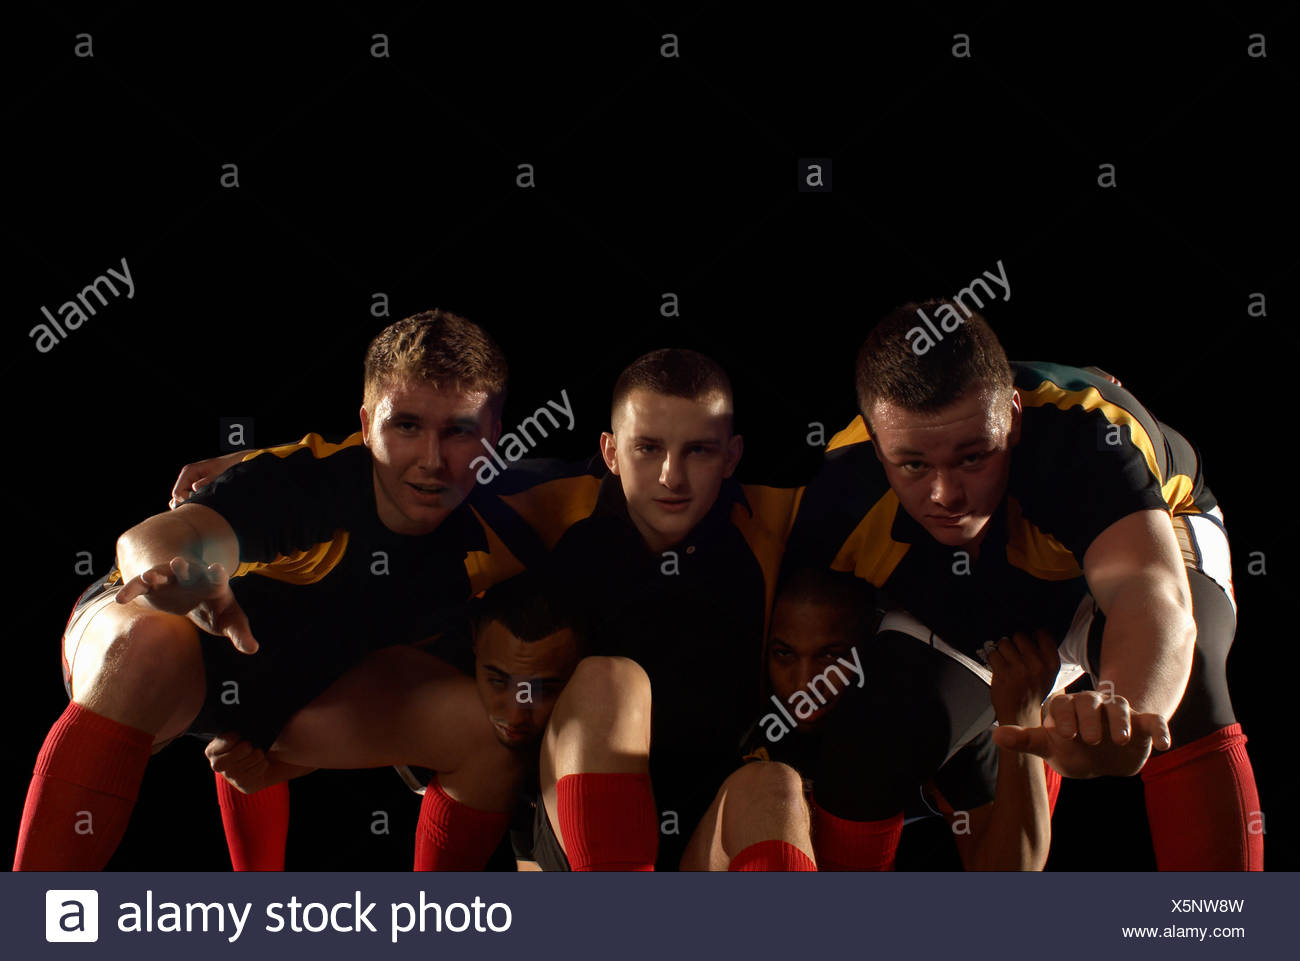 Rugby players in scrum formation - Stock Image